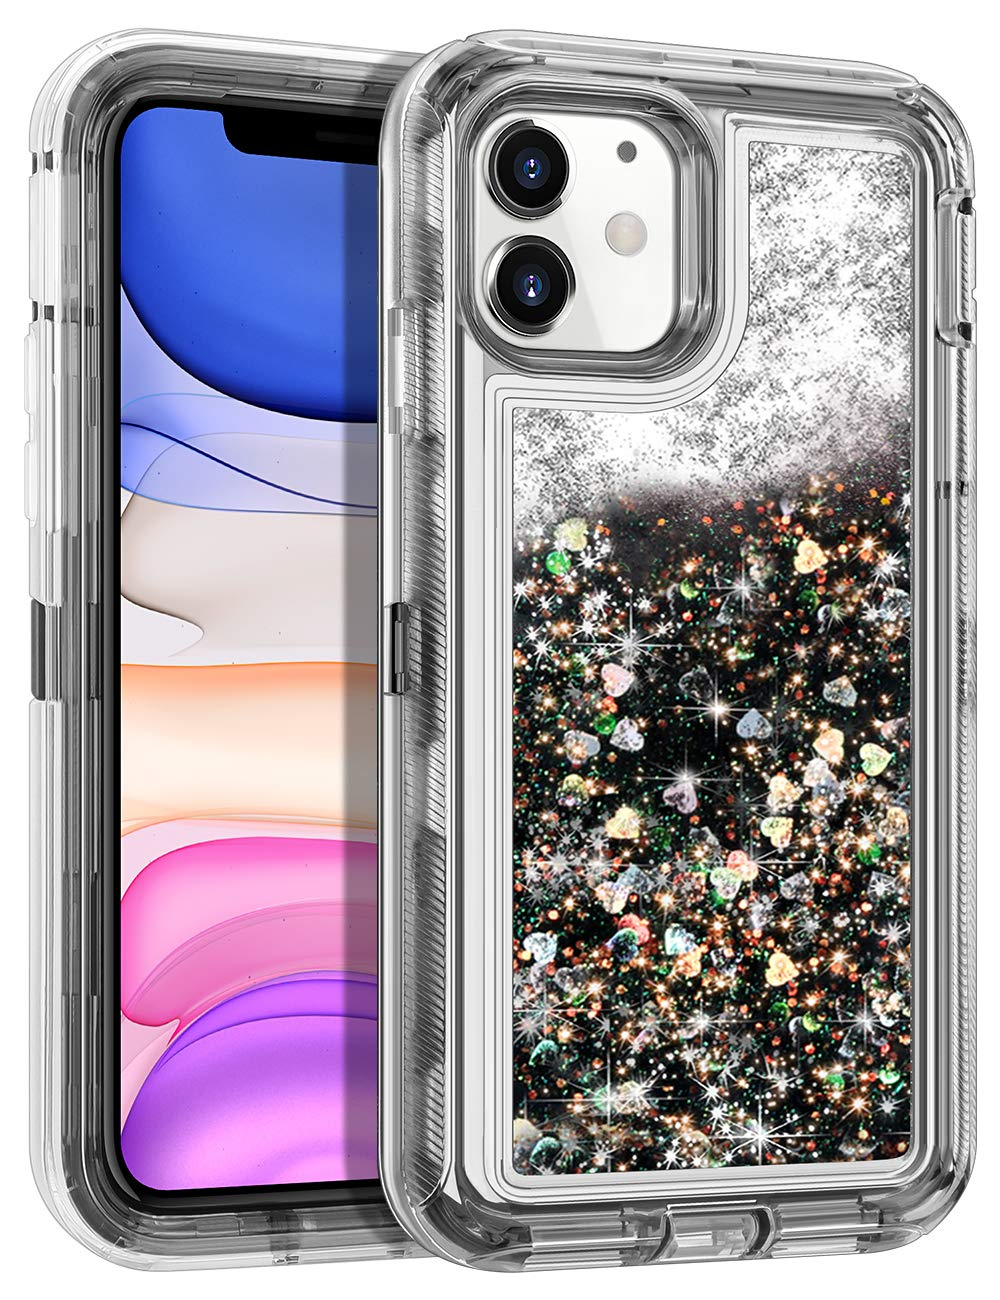 WOLLONY for iPhone 11 Case for Women Glitter Heavy Duty Girly Liquid Bling Quicksand 3 in 1 Hybrid Impact Resistant Shockproof Soft Clear Rubber Protective Cover for iPhone 11 6.1inch Black